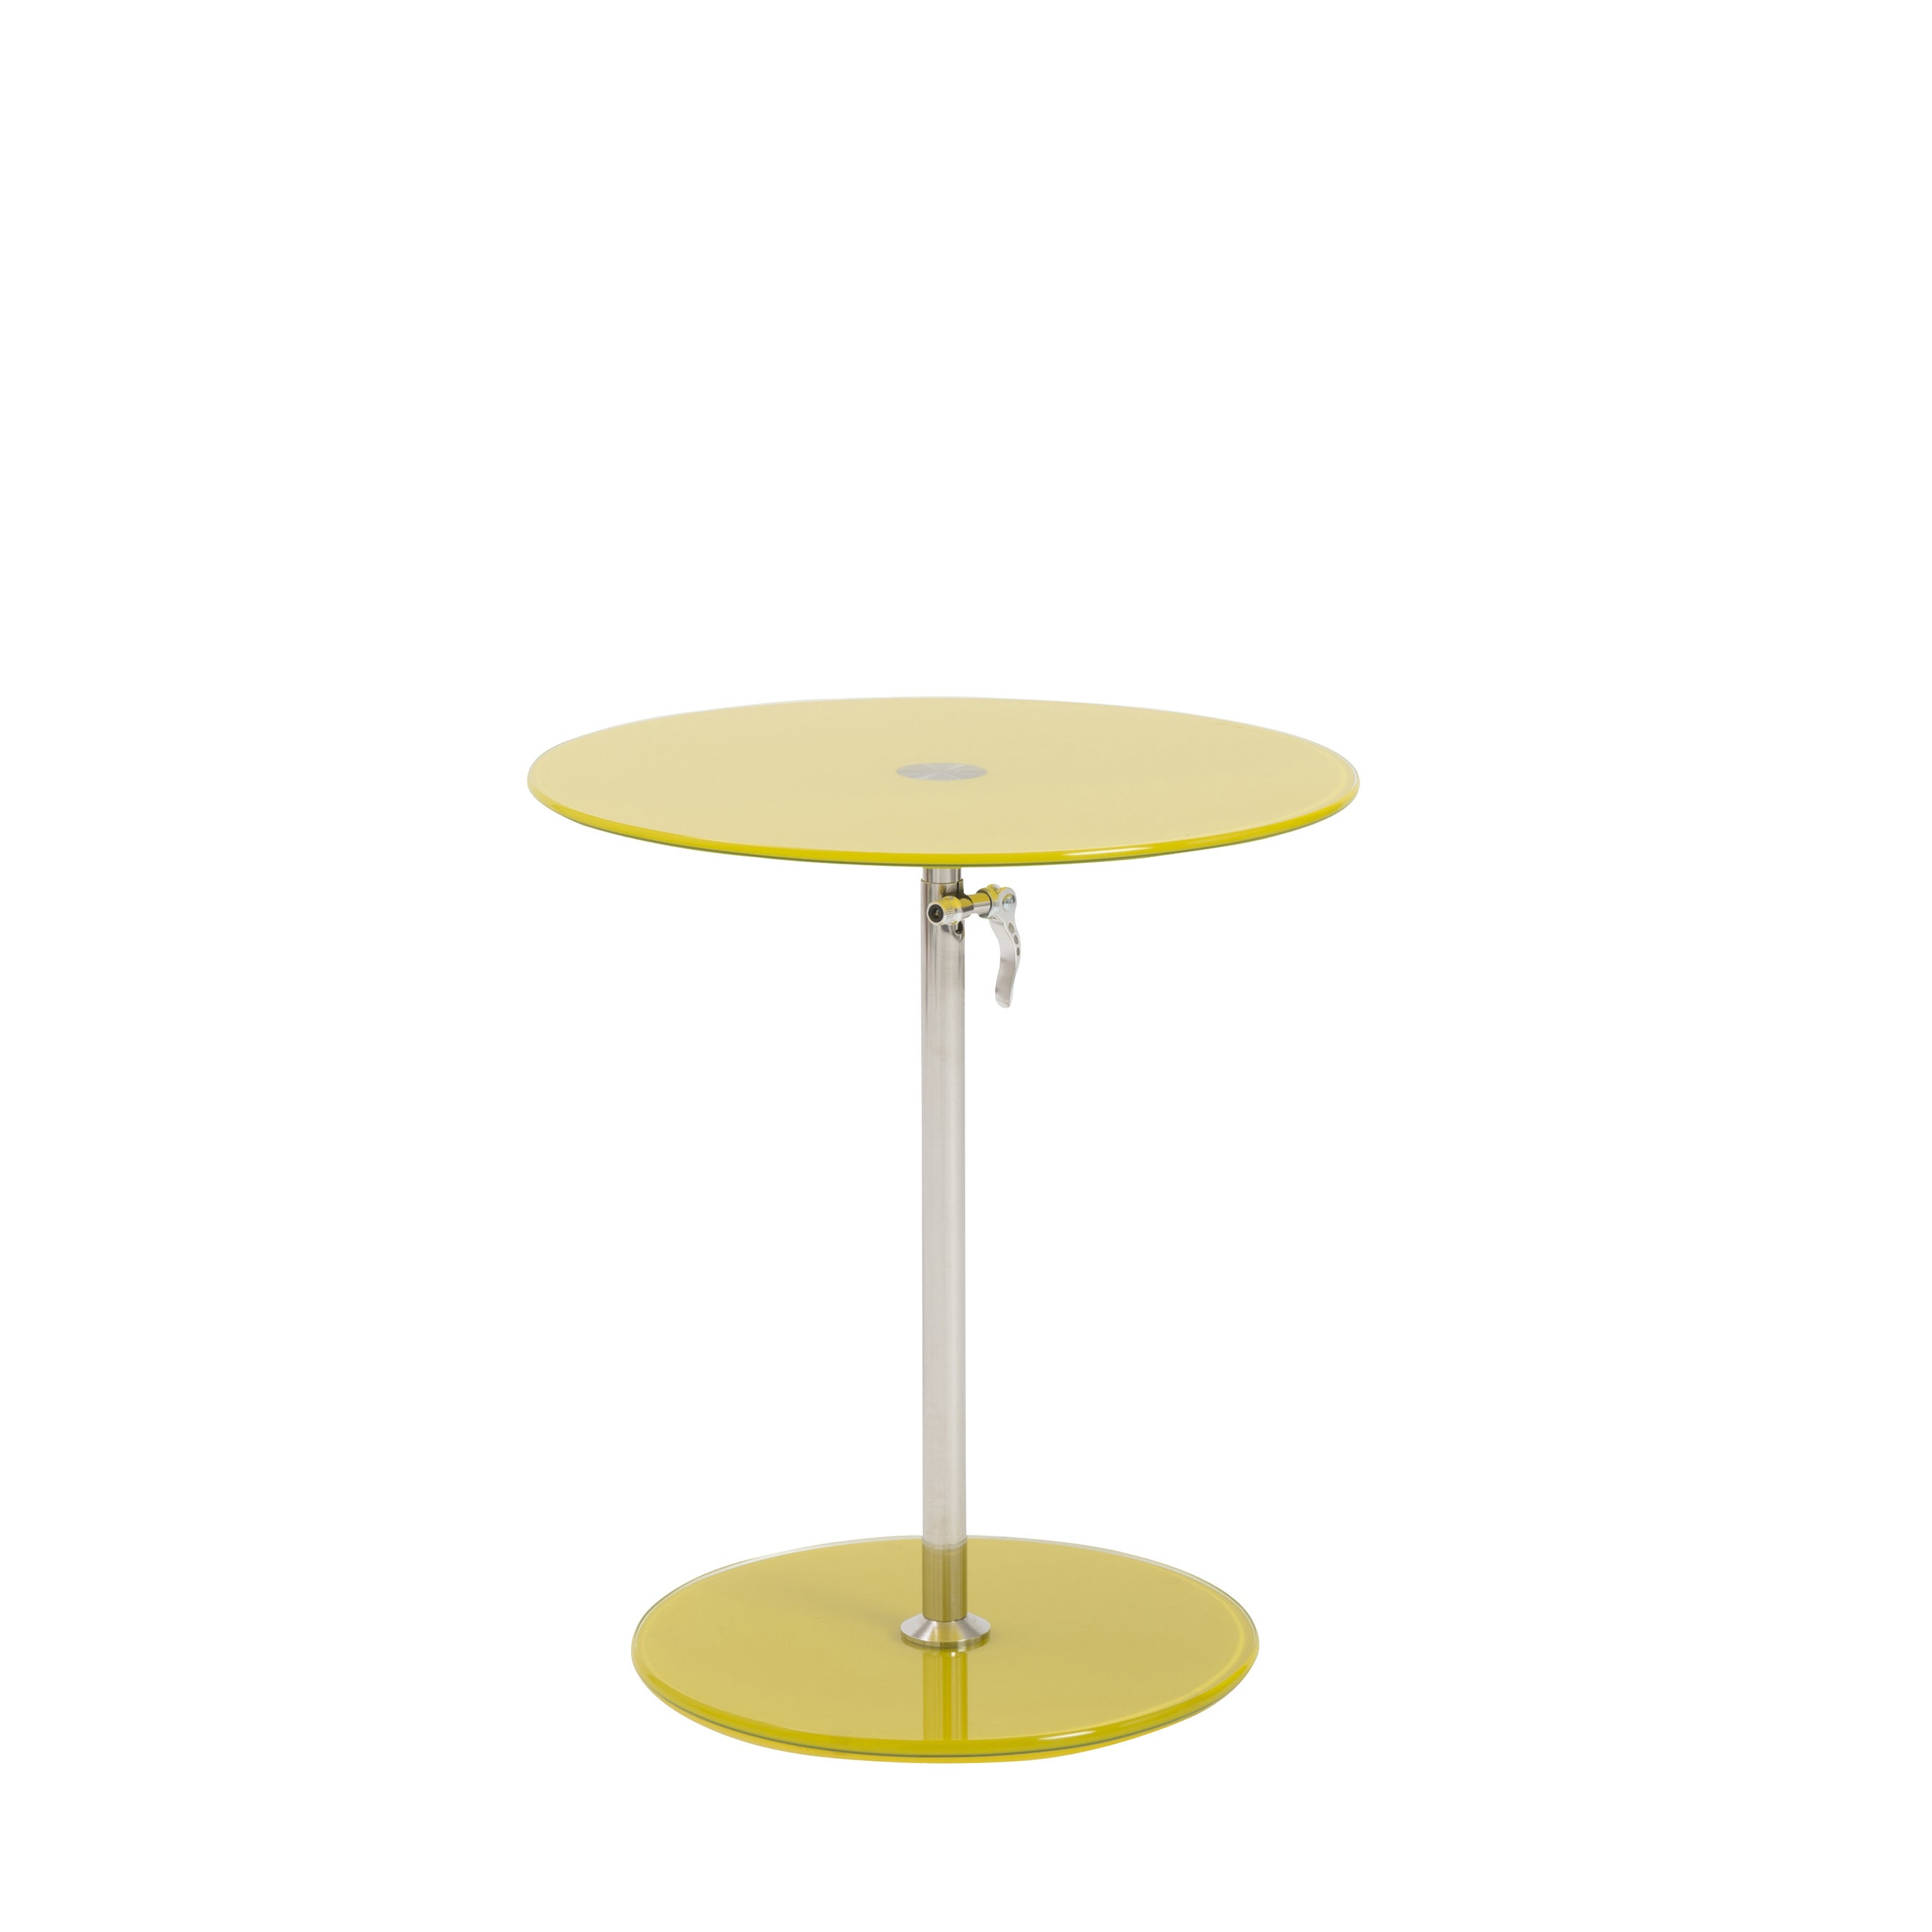 Shop euro style radinka yellow glass stainless steel round side table free shipping today overstock com 13882320